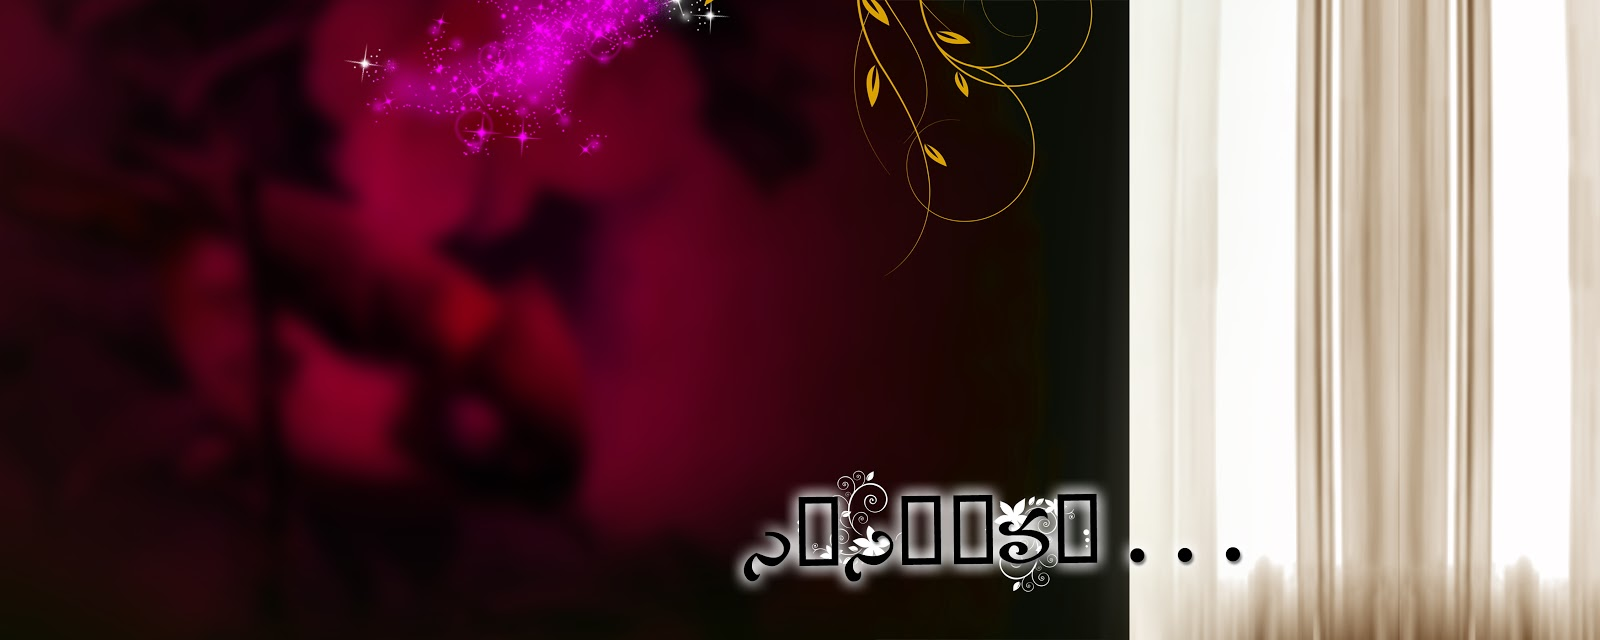 wedding photo background psd free download - Vaydile.euforic.co